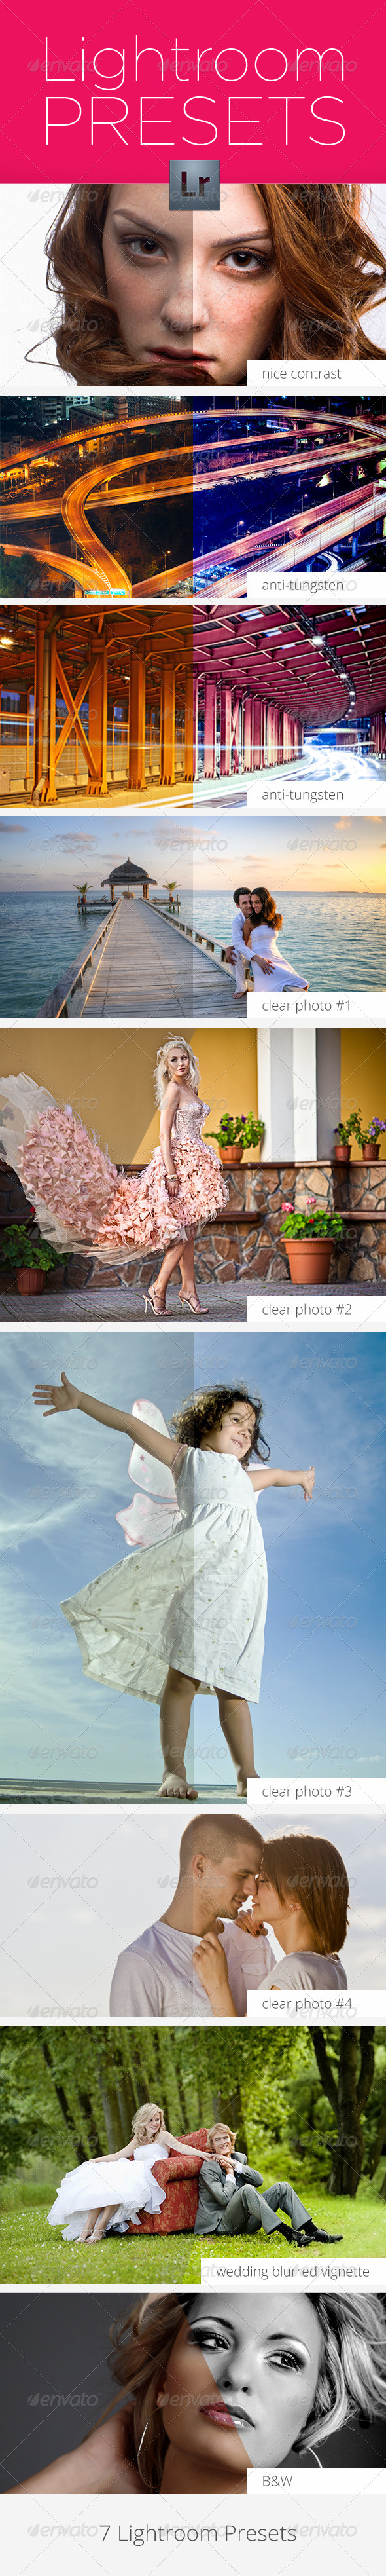 GraphicRiver 7 Lightroom Presets for Better Photos 4852548